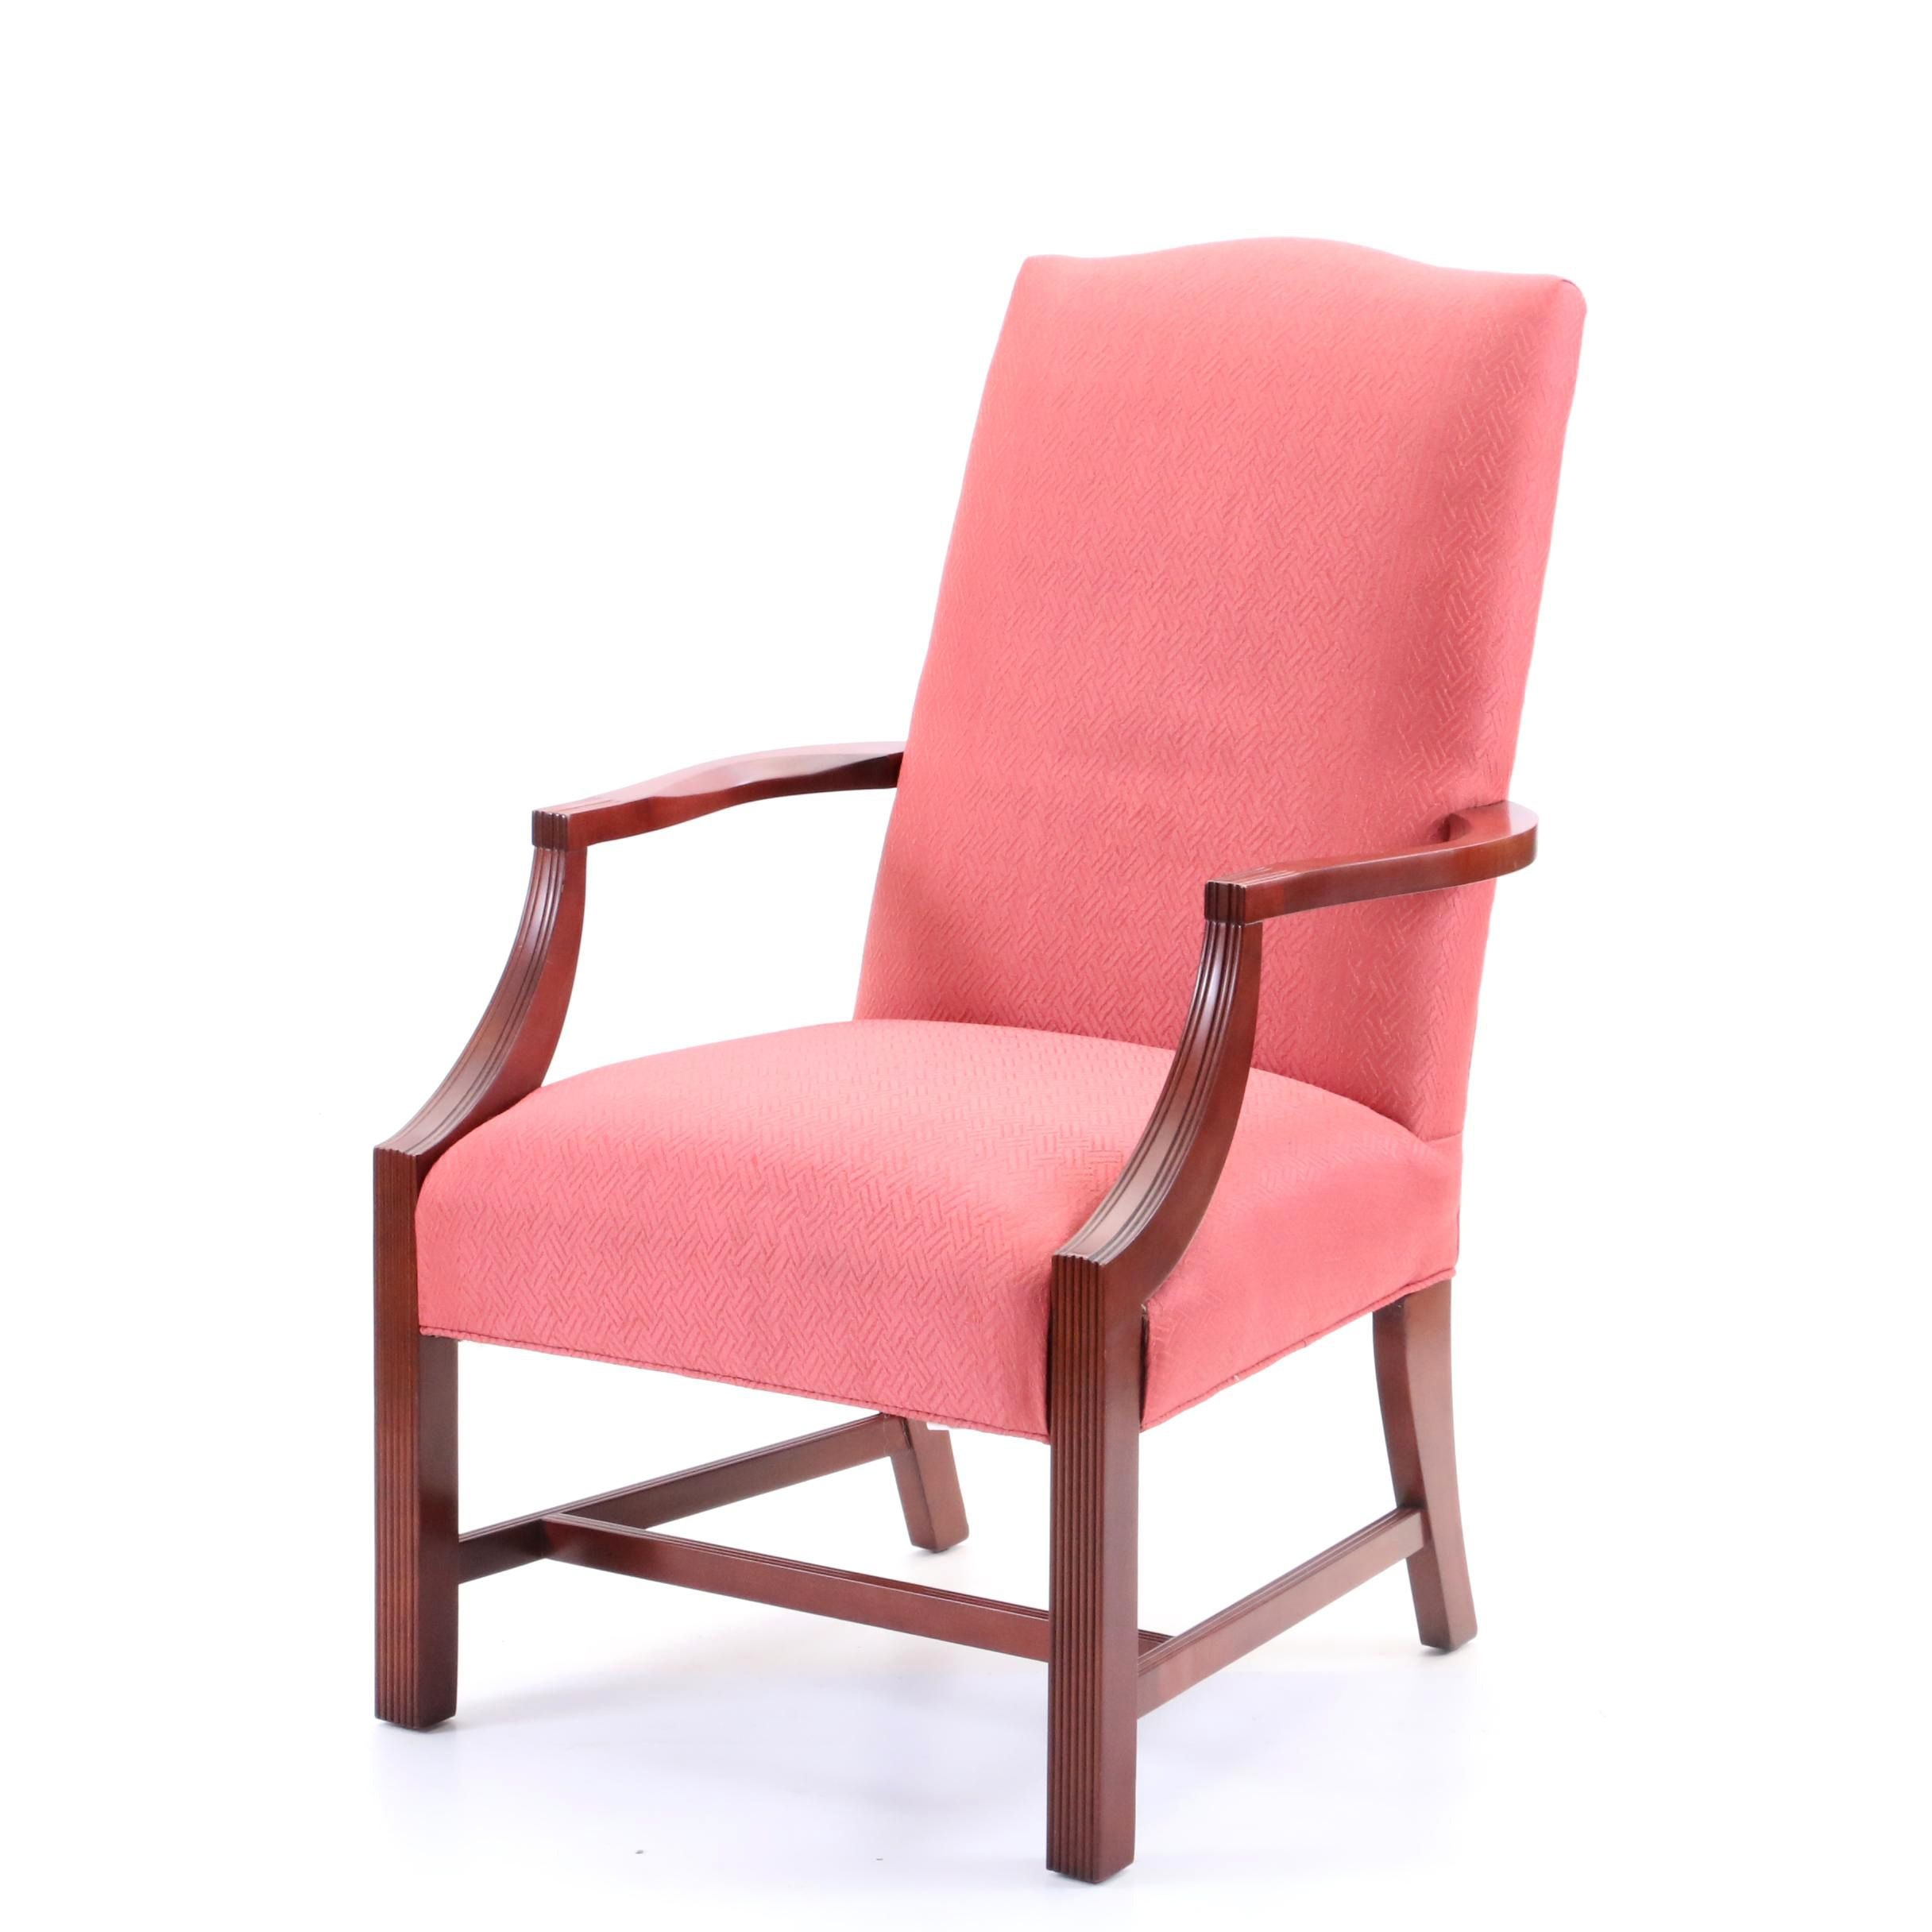 Federal Style Upholstered Lolling Chair by Laine, 21st Century